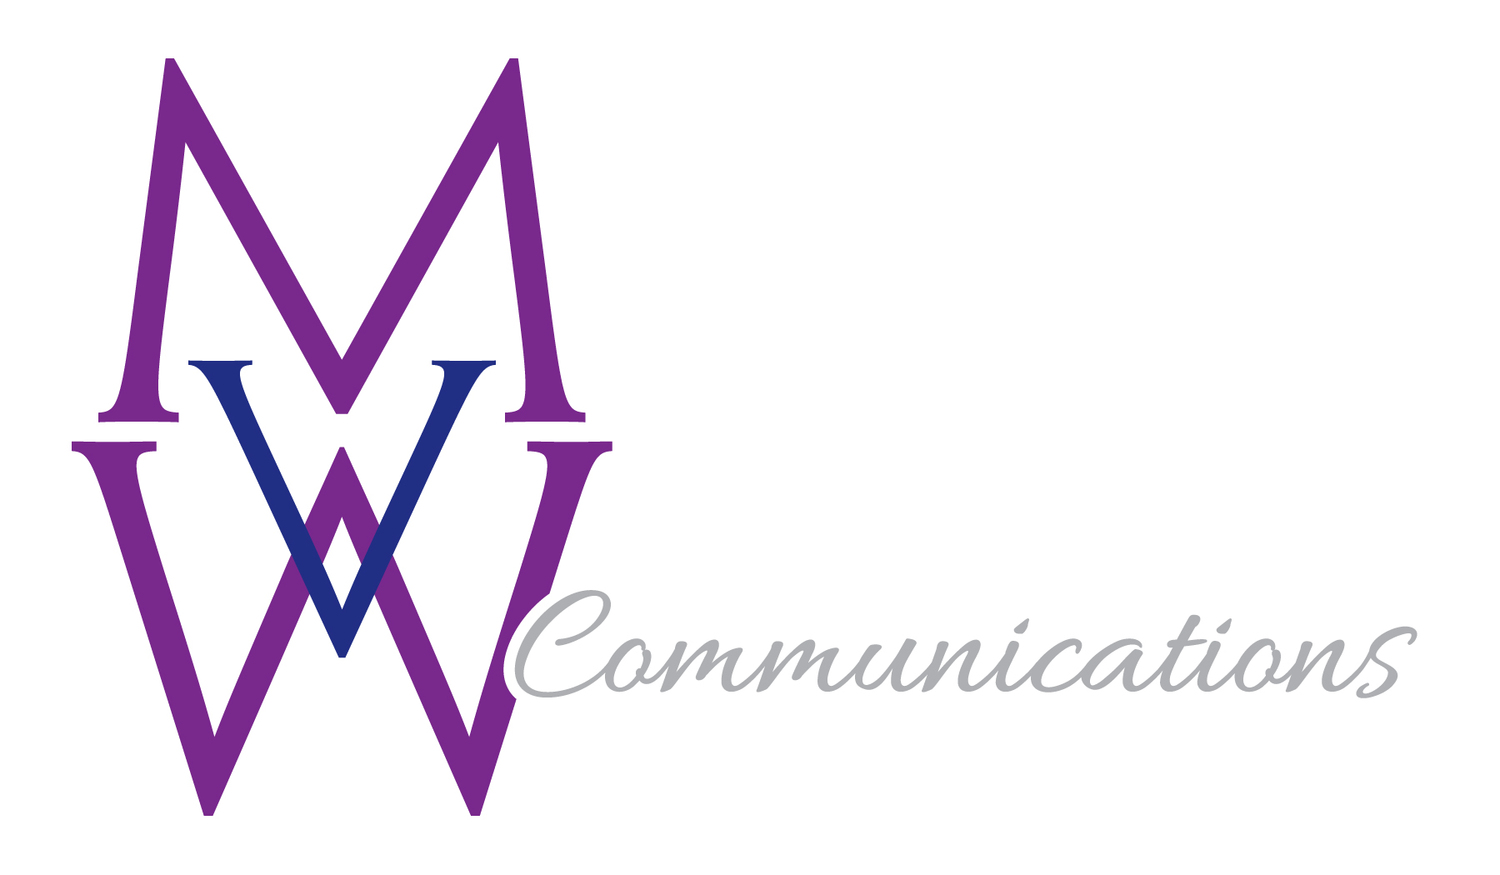 MVW Communications